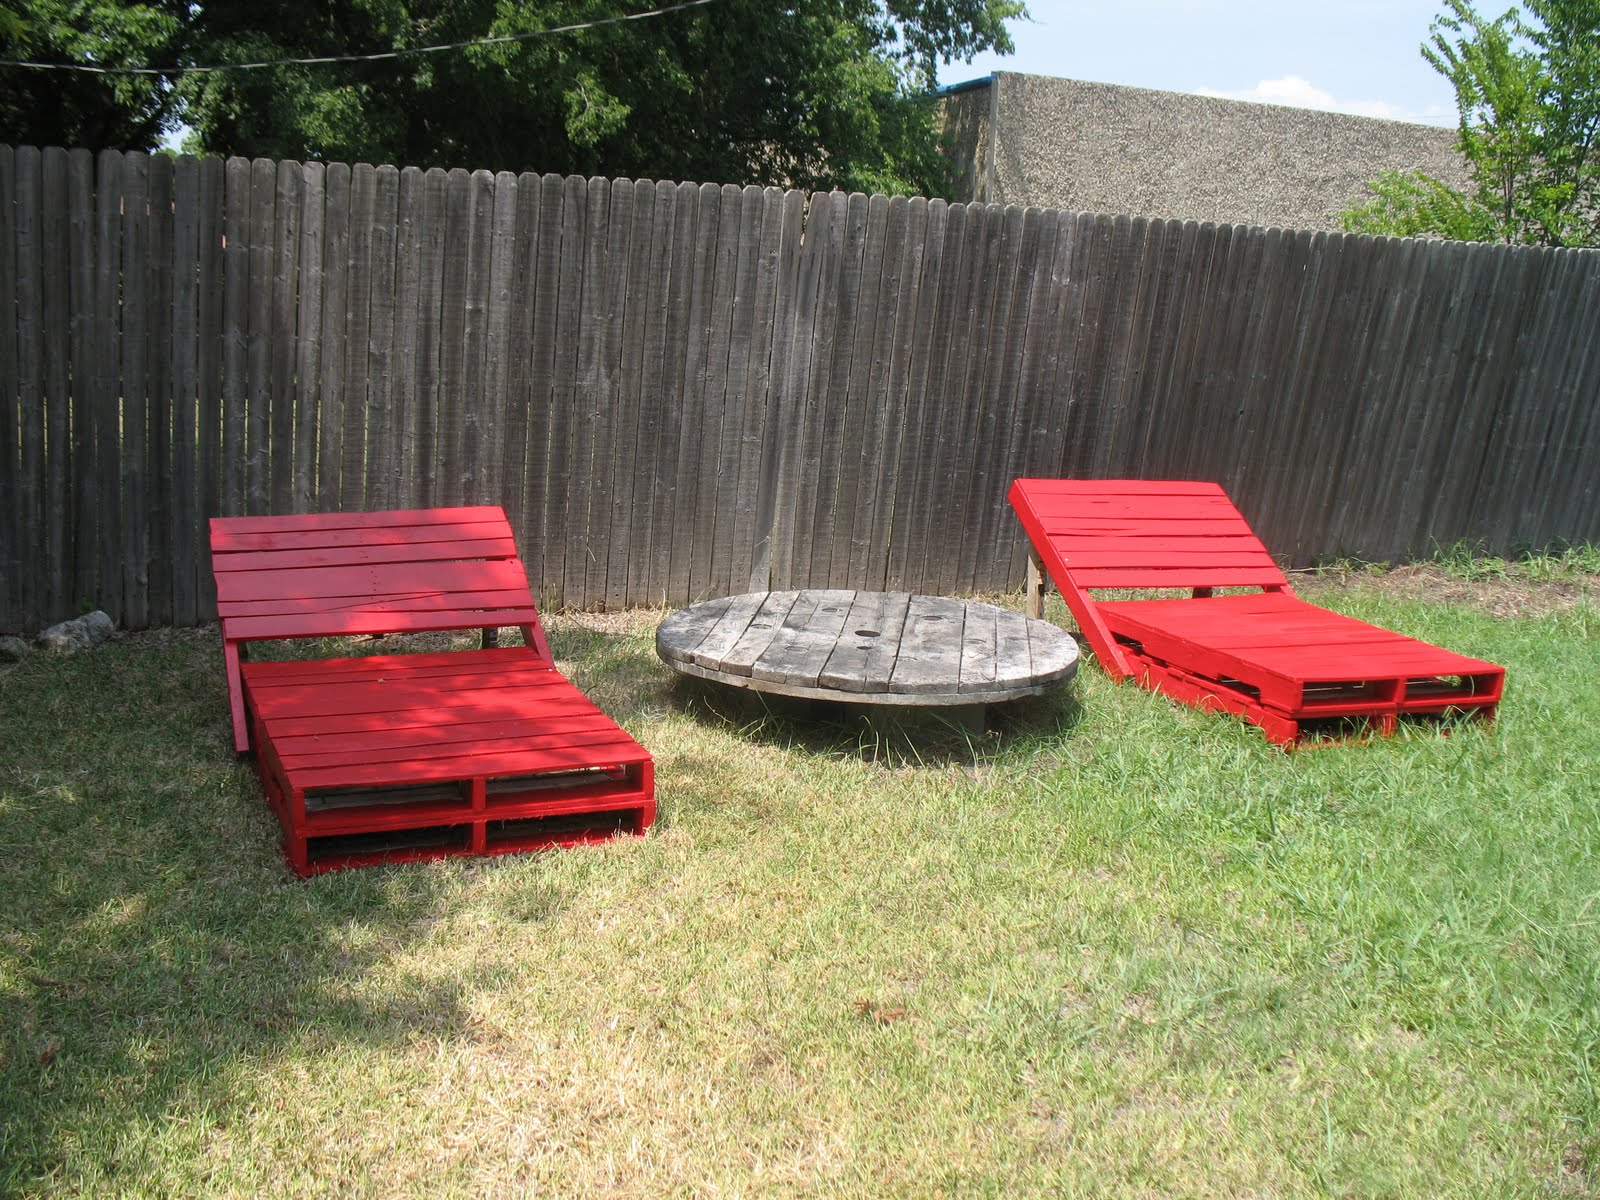 outdoor pallet lounger pool chairs from pallets - How To Make Garden Furniture Out Of Pallets